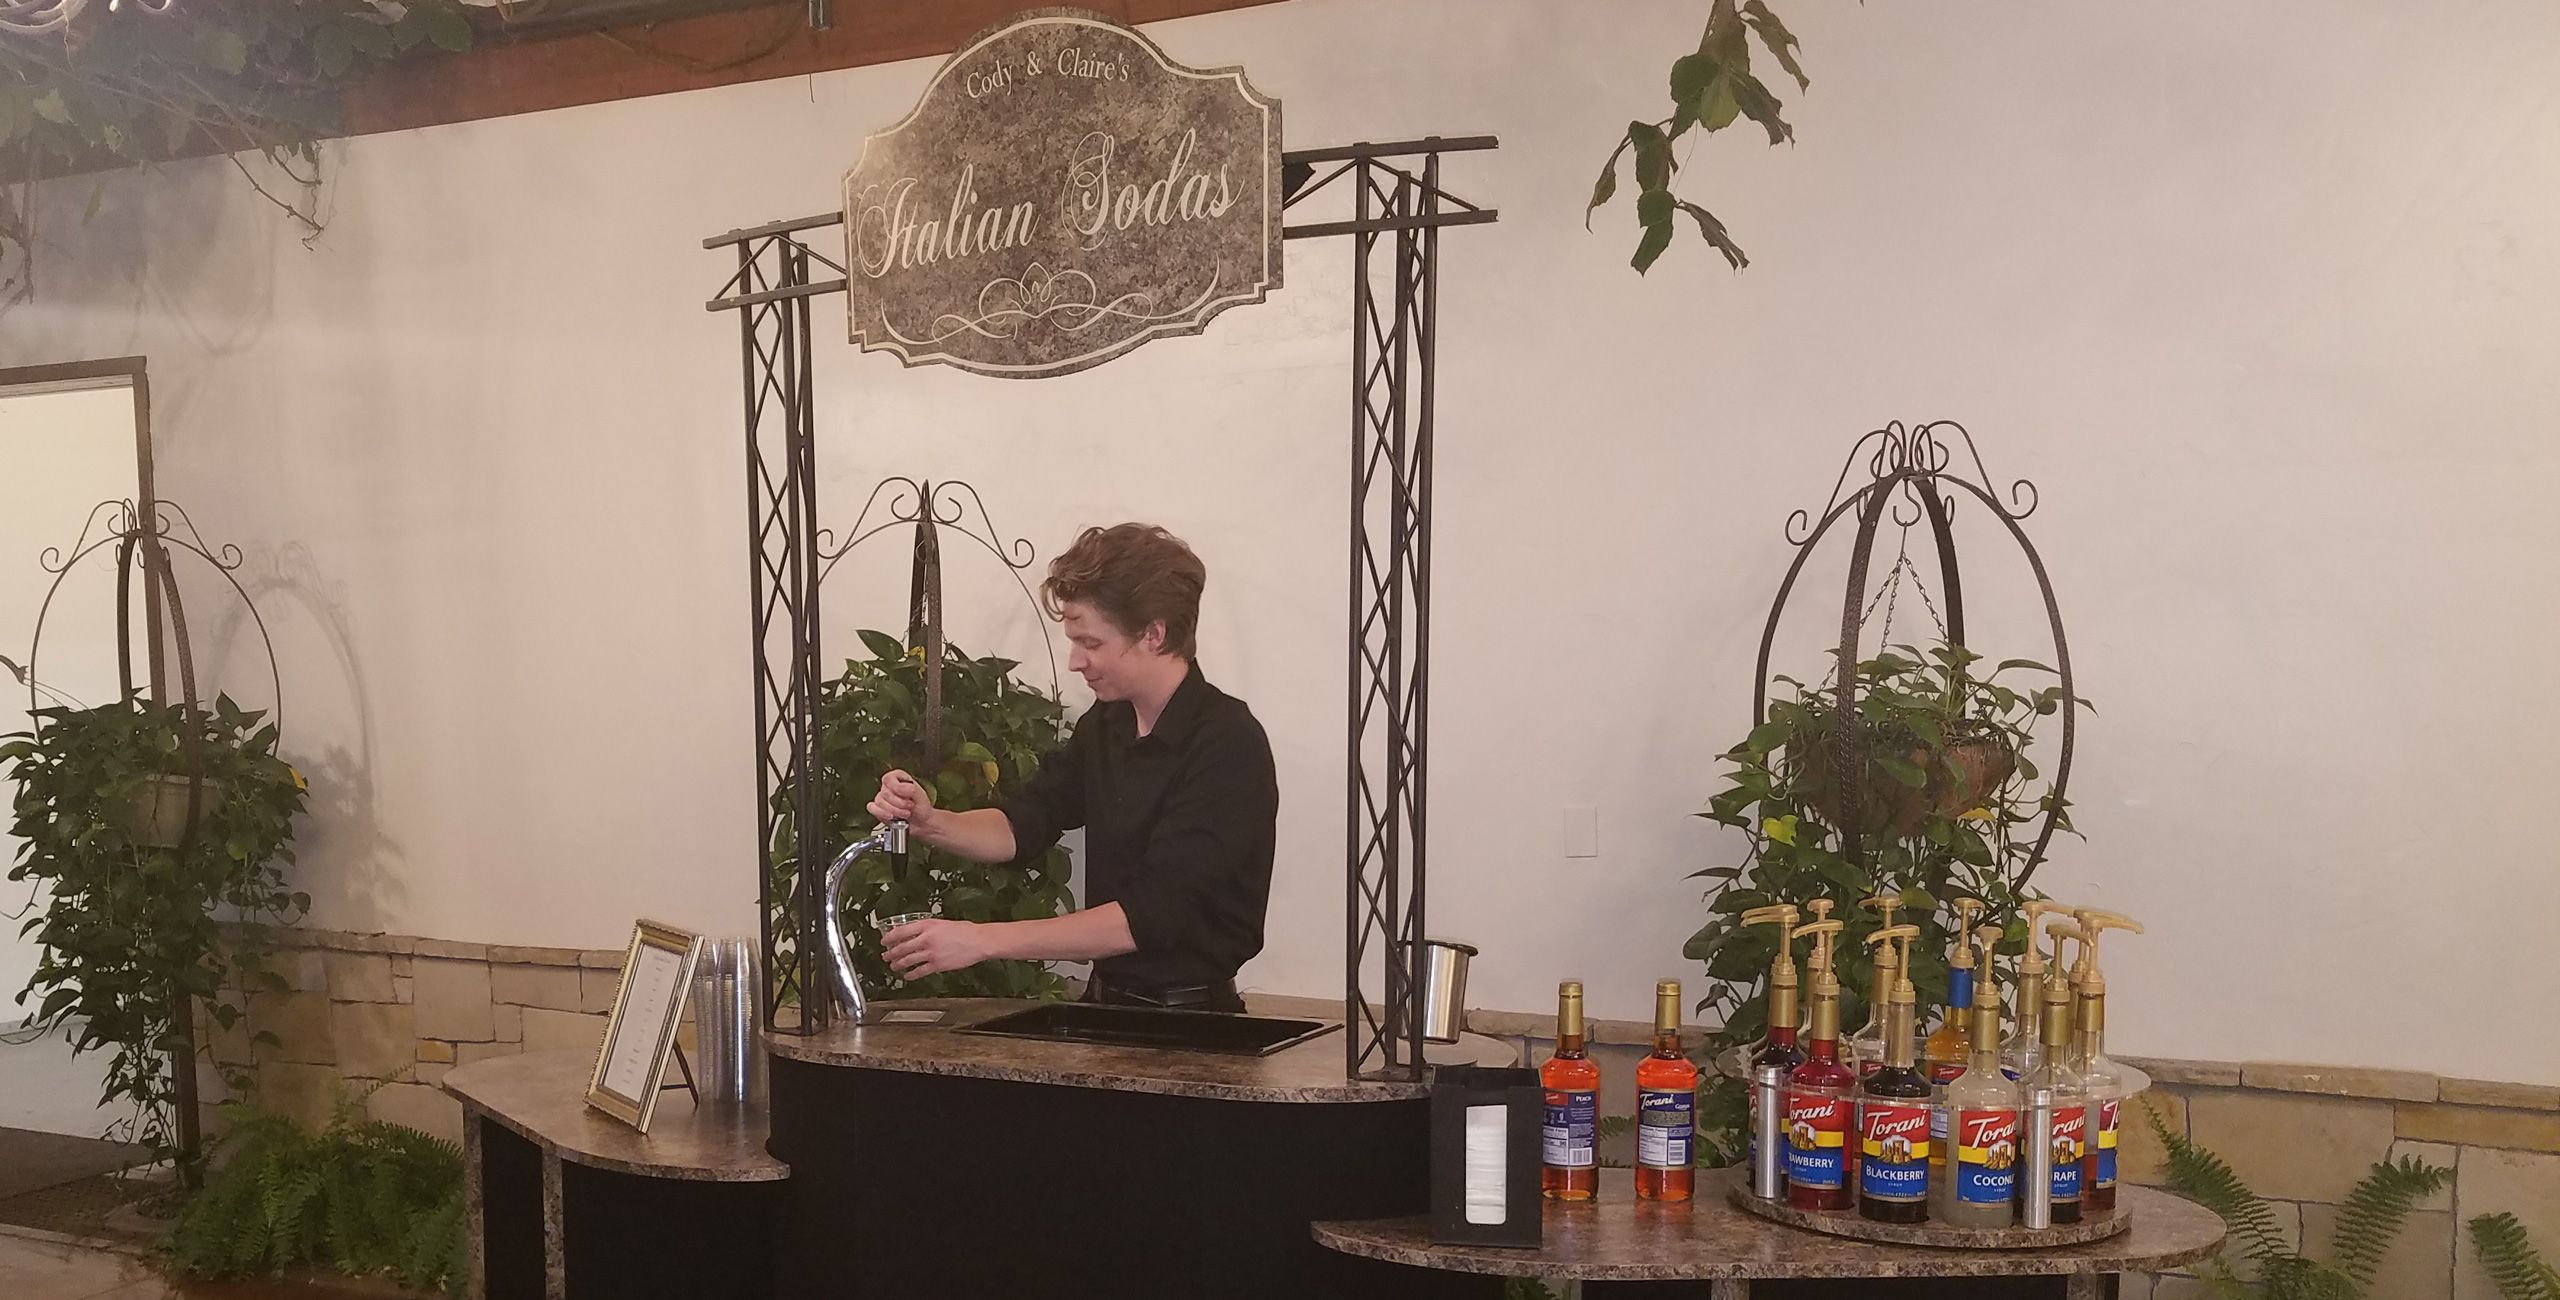 Catering Station